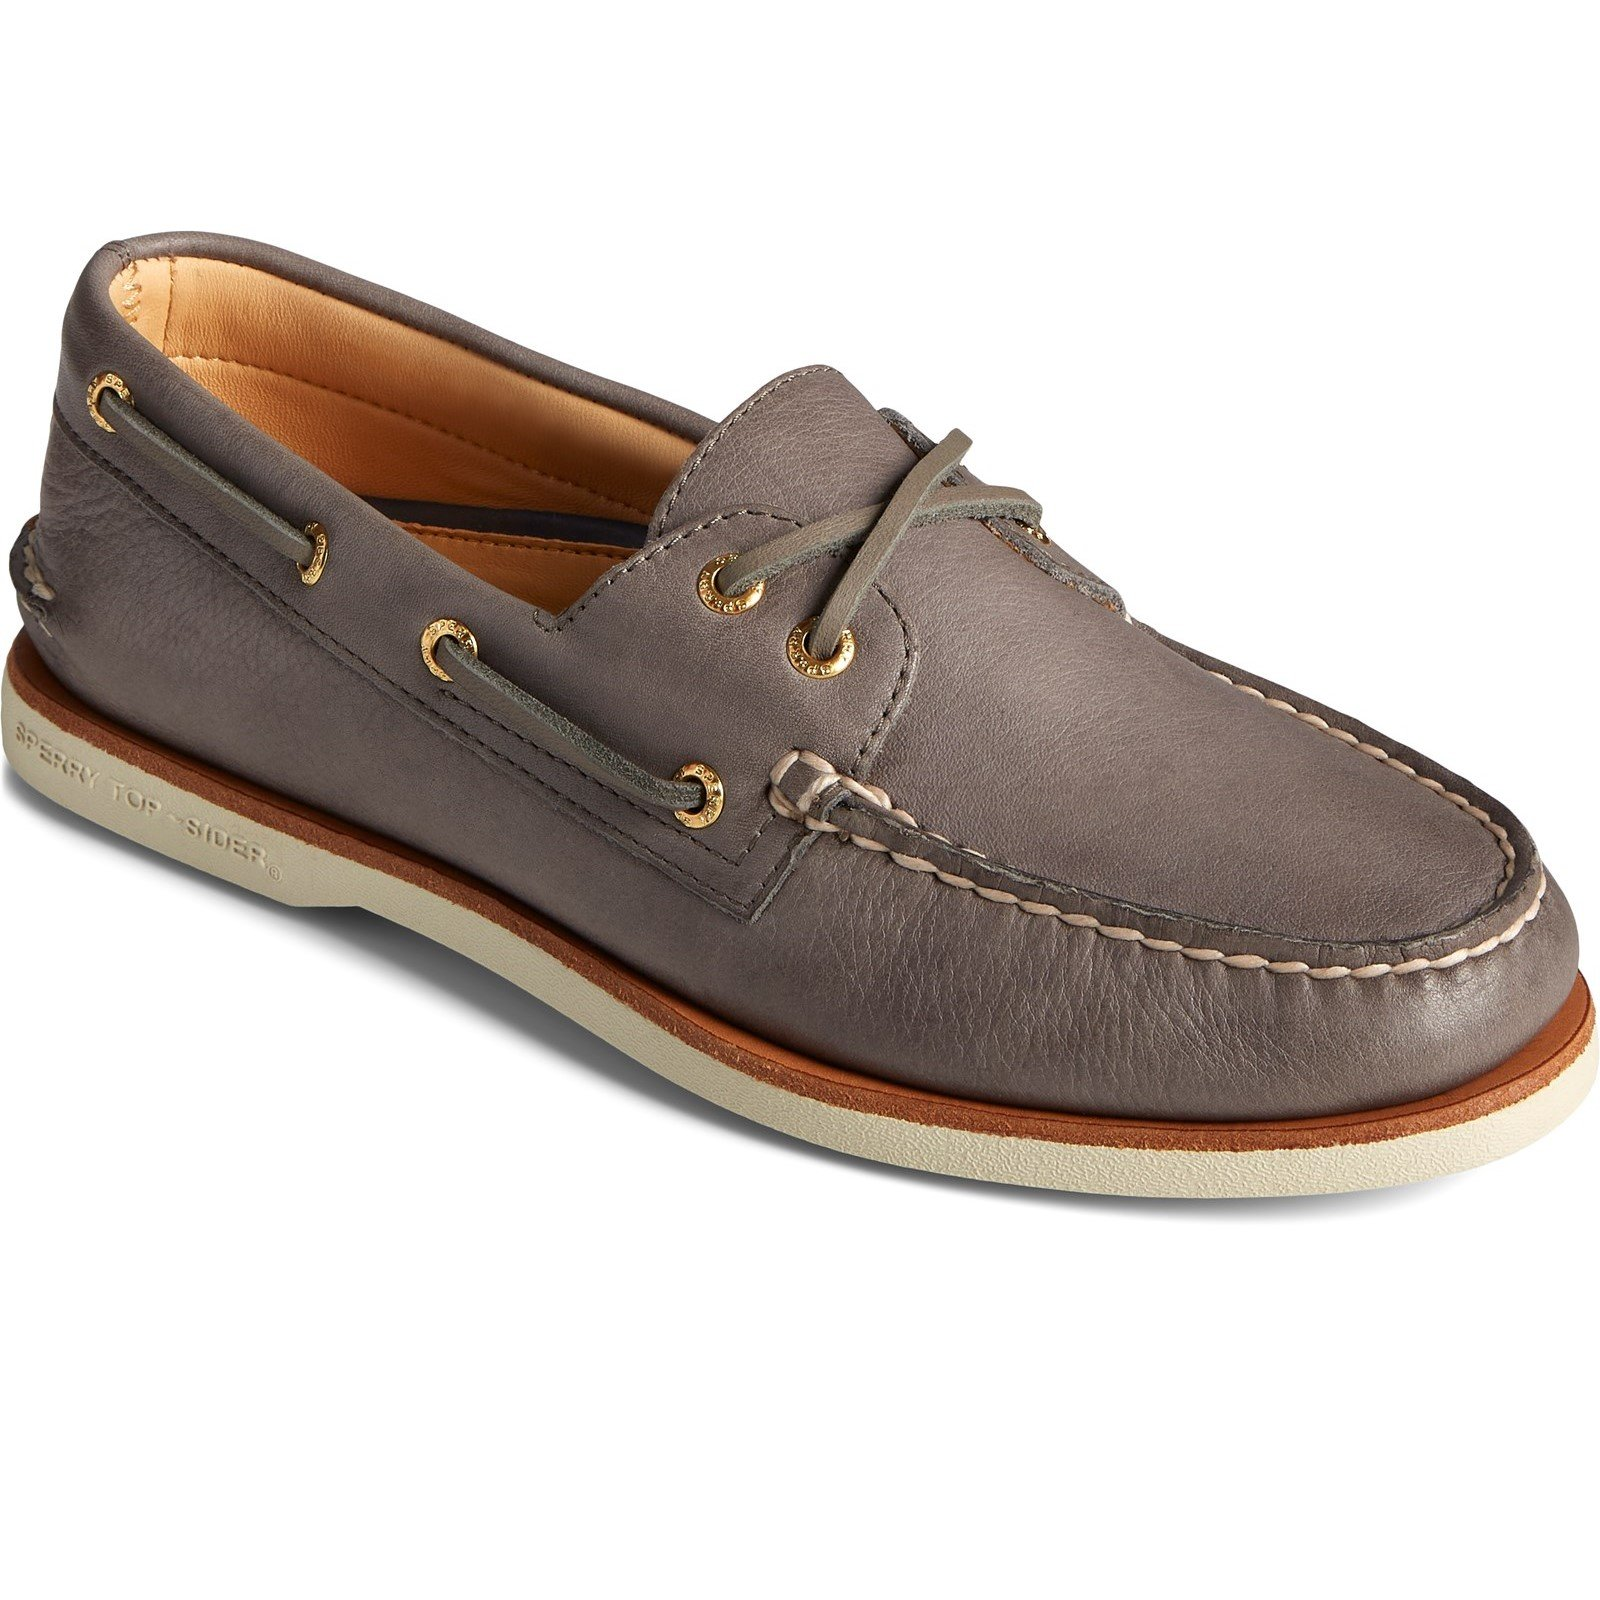 Sperry Men's A/O 2-Eye Boat Shoe Various Colours 32926 - Charcoal 9